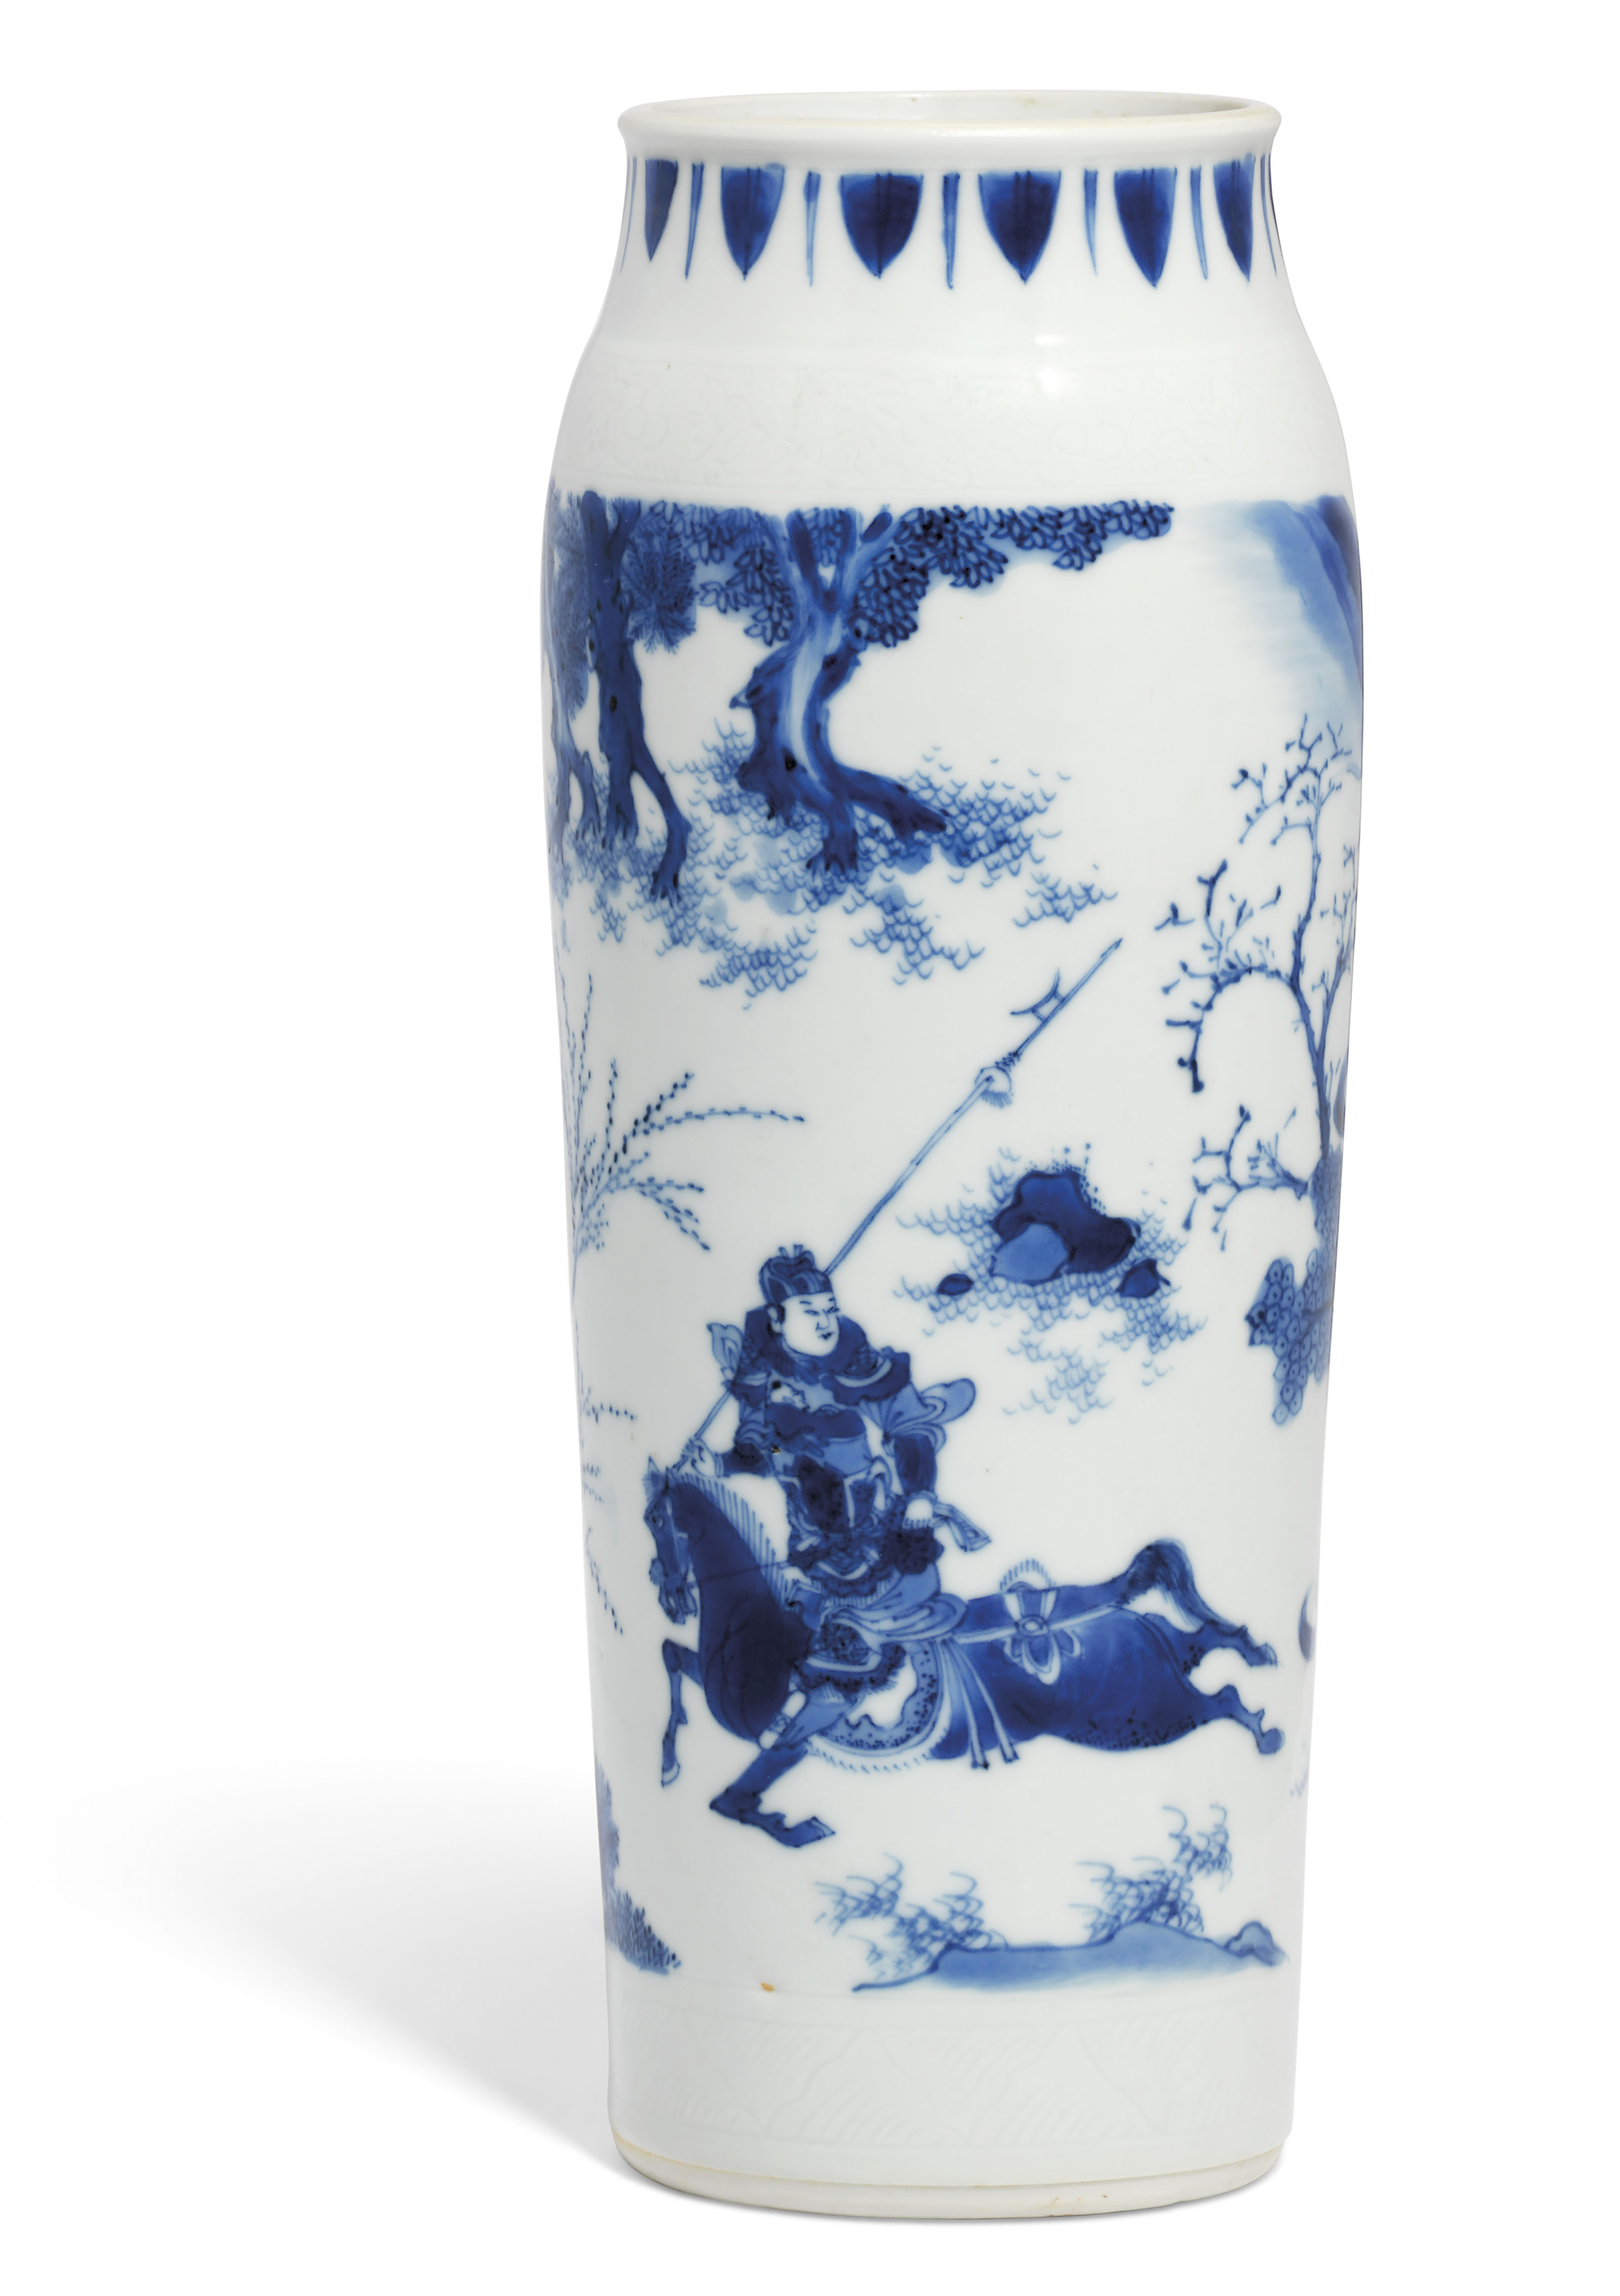 A BLUE AND WHITE 'FIGURAL' SLEEVE VASE